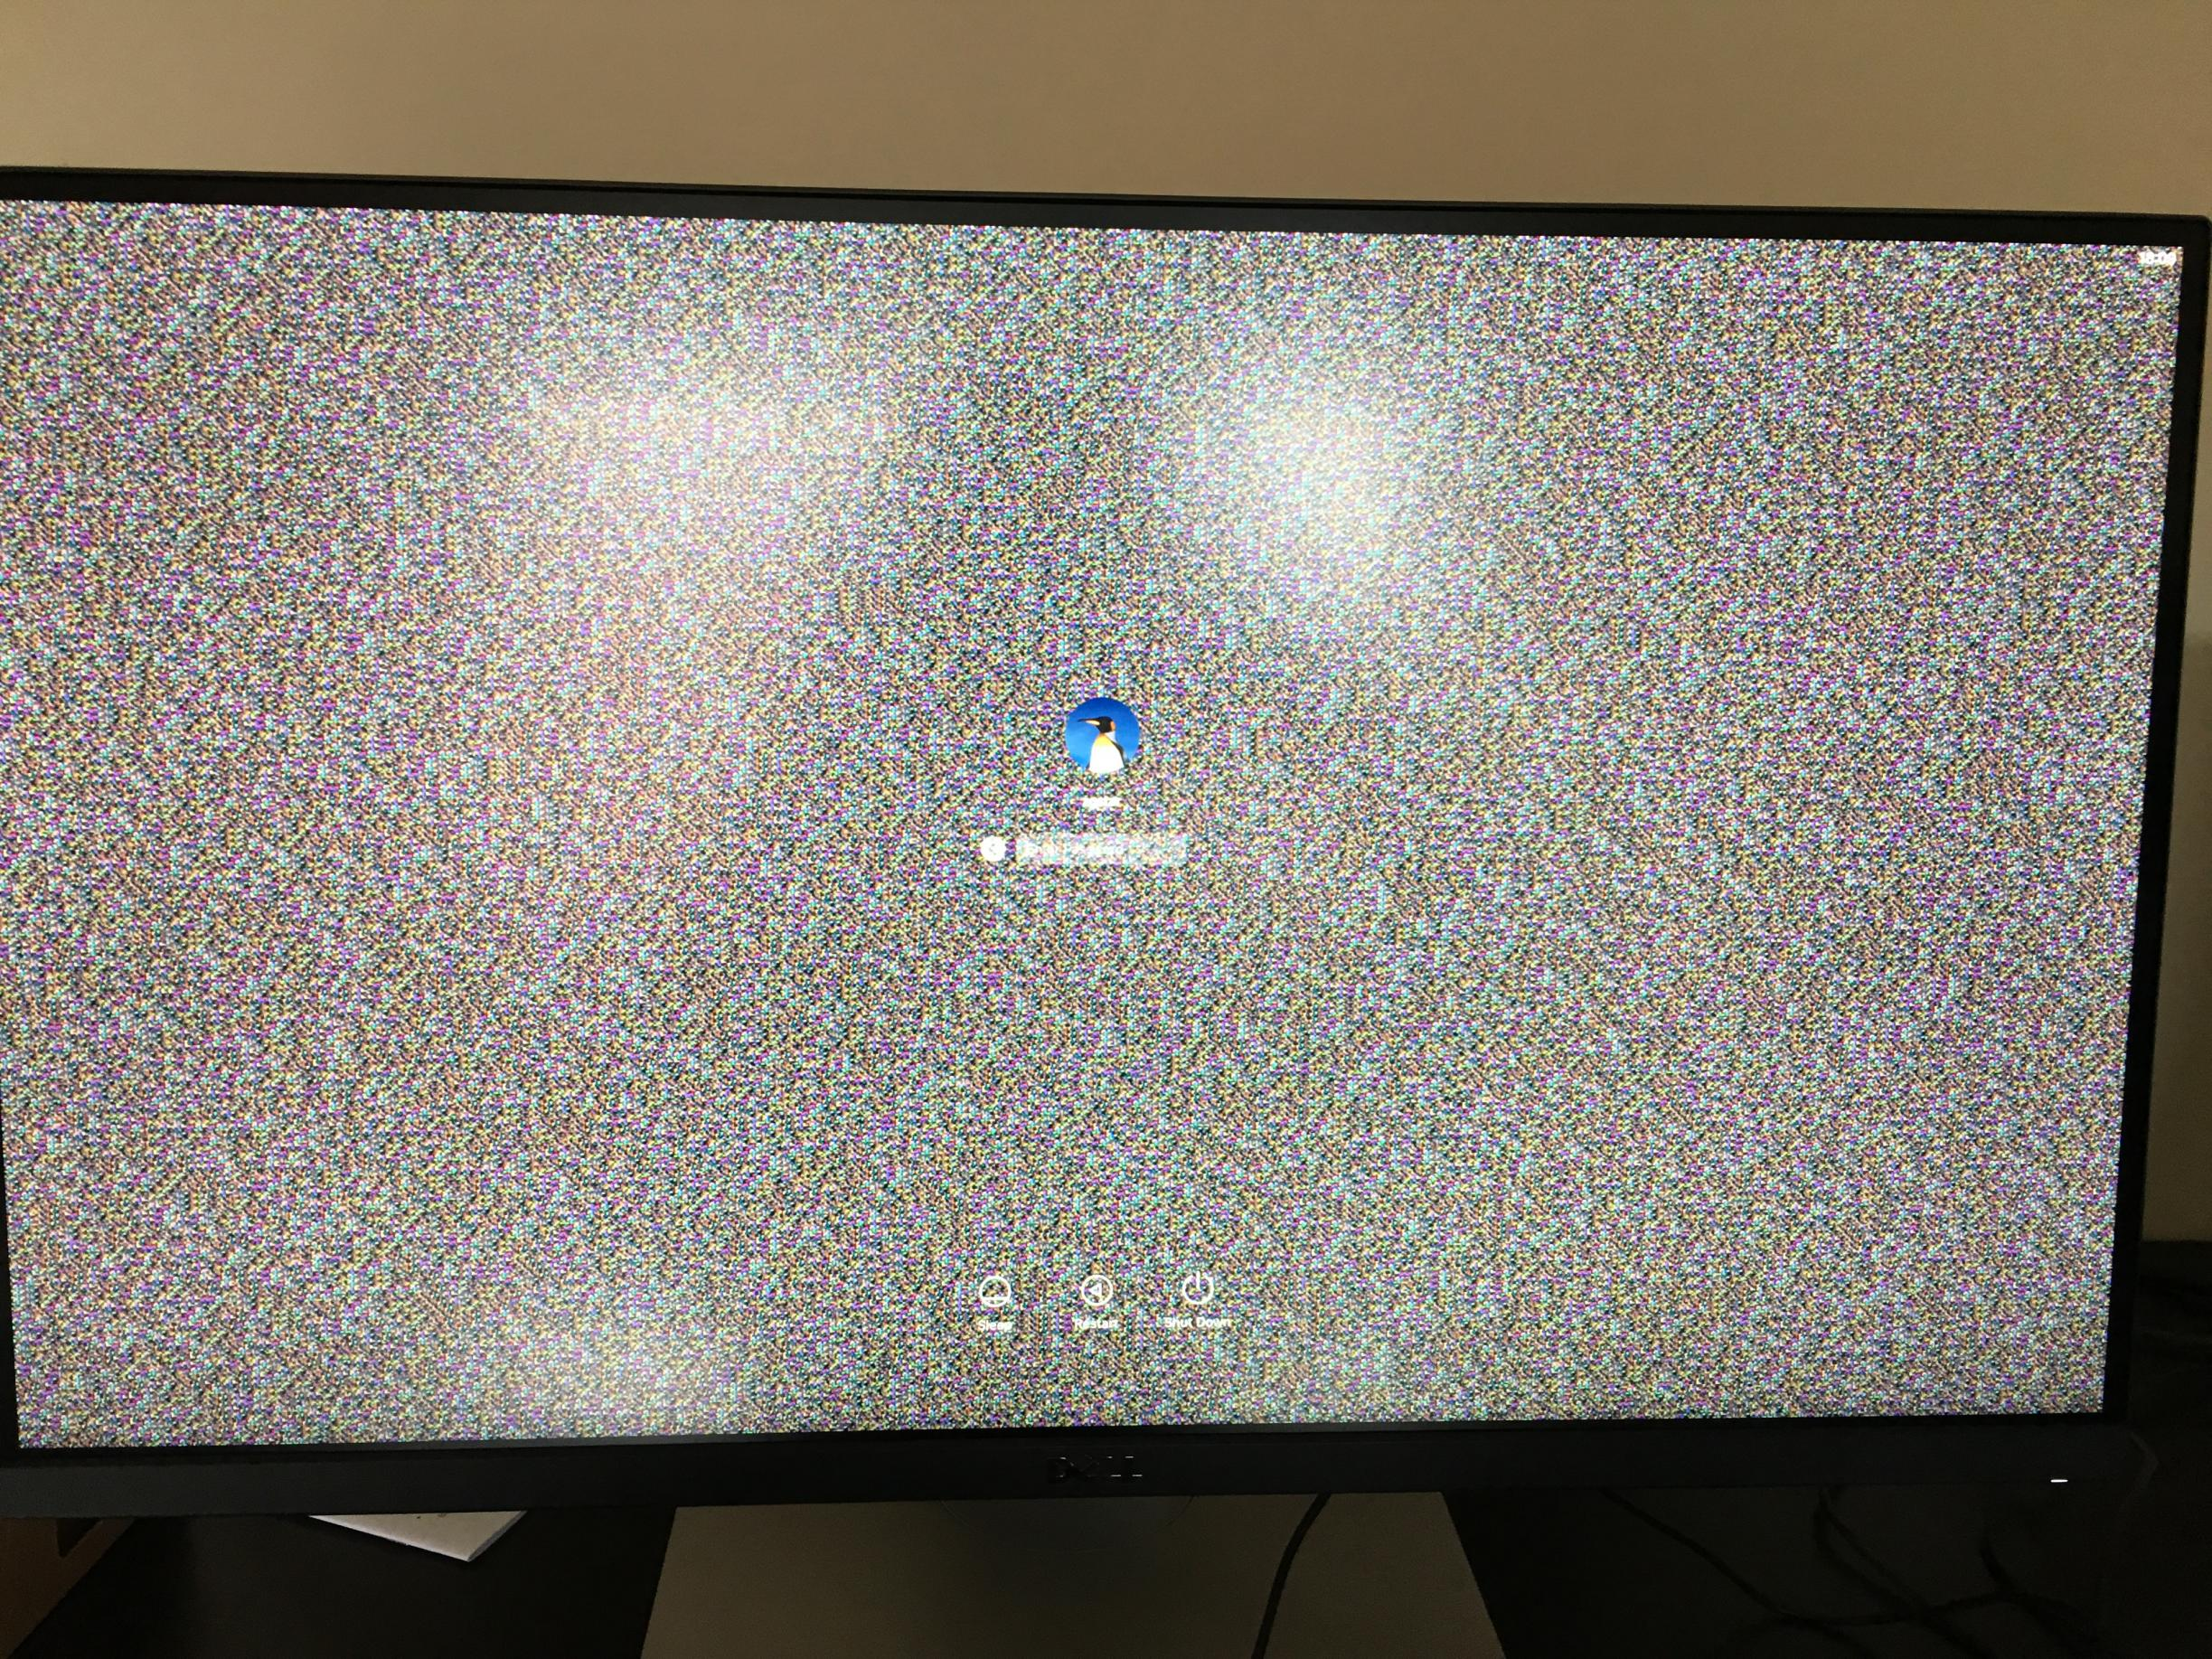 EVGA GT 740 SC w/ webdrivers: glitches and no full